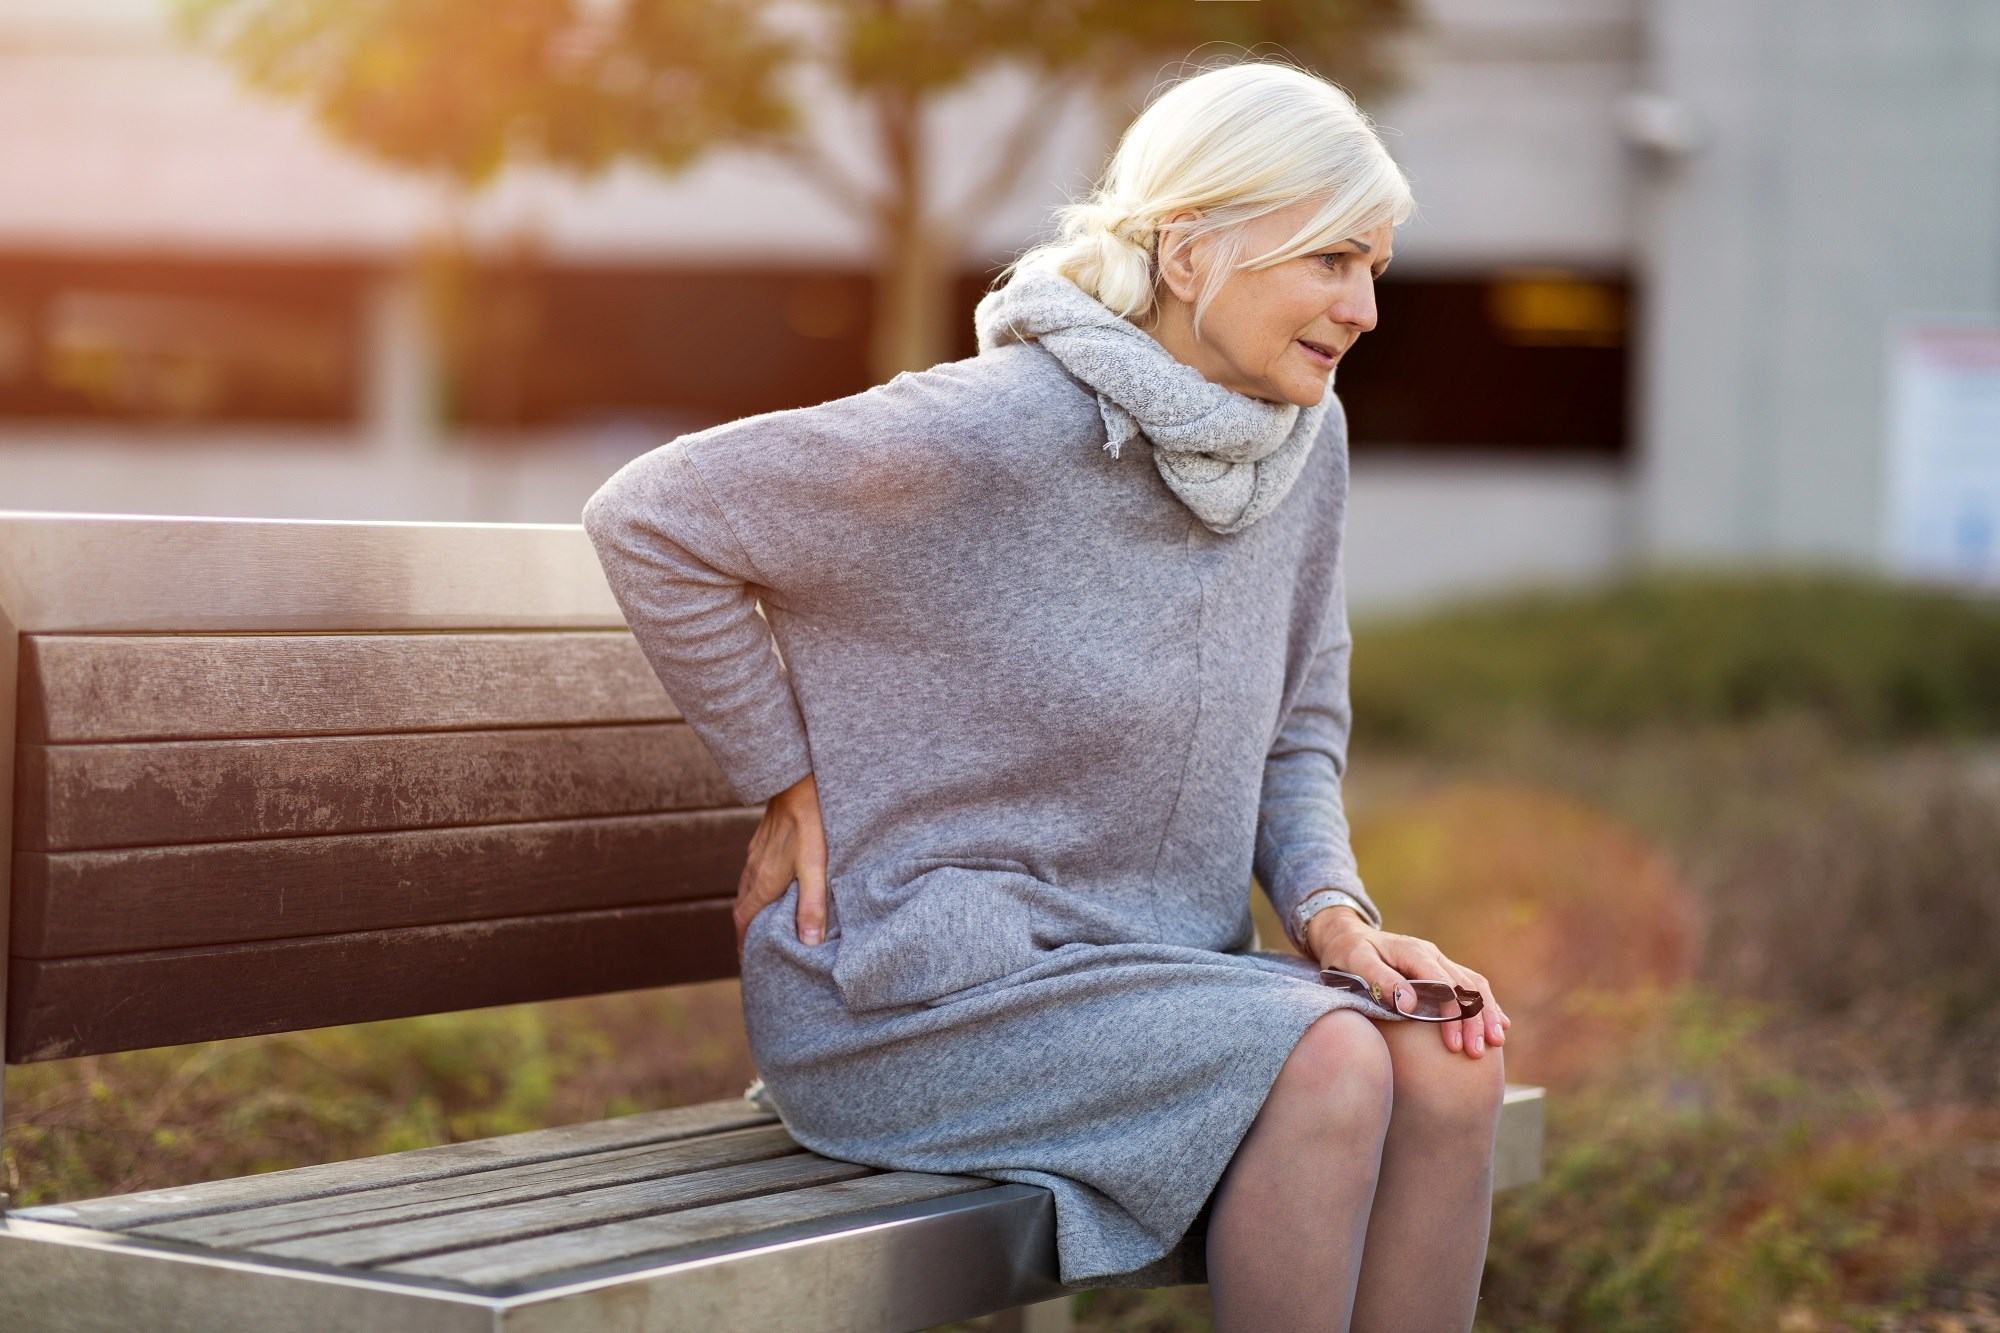 Frequent persistent back pain is associated with increased mortality in older women.